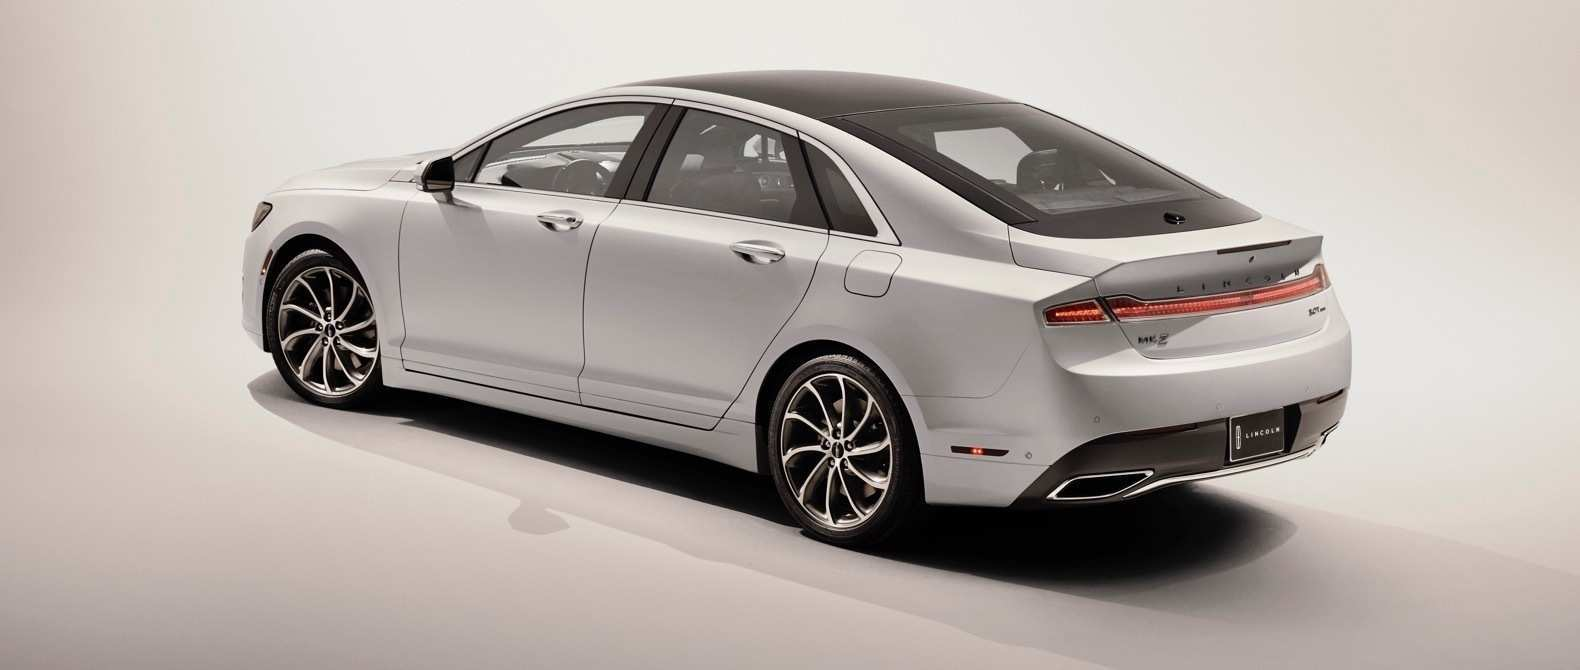 95 New Spy Shots Lincoln Mkz Sedan Specs